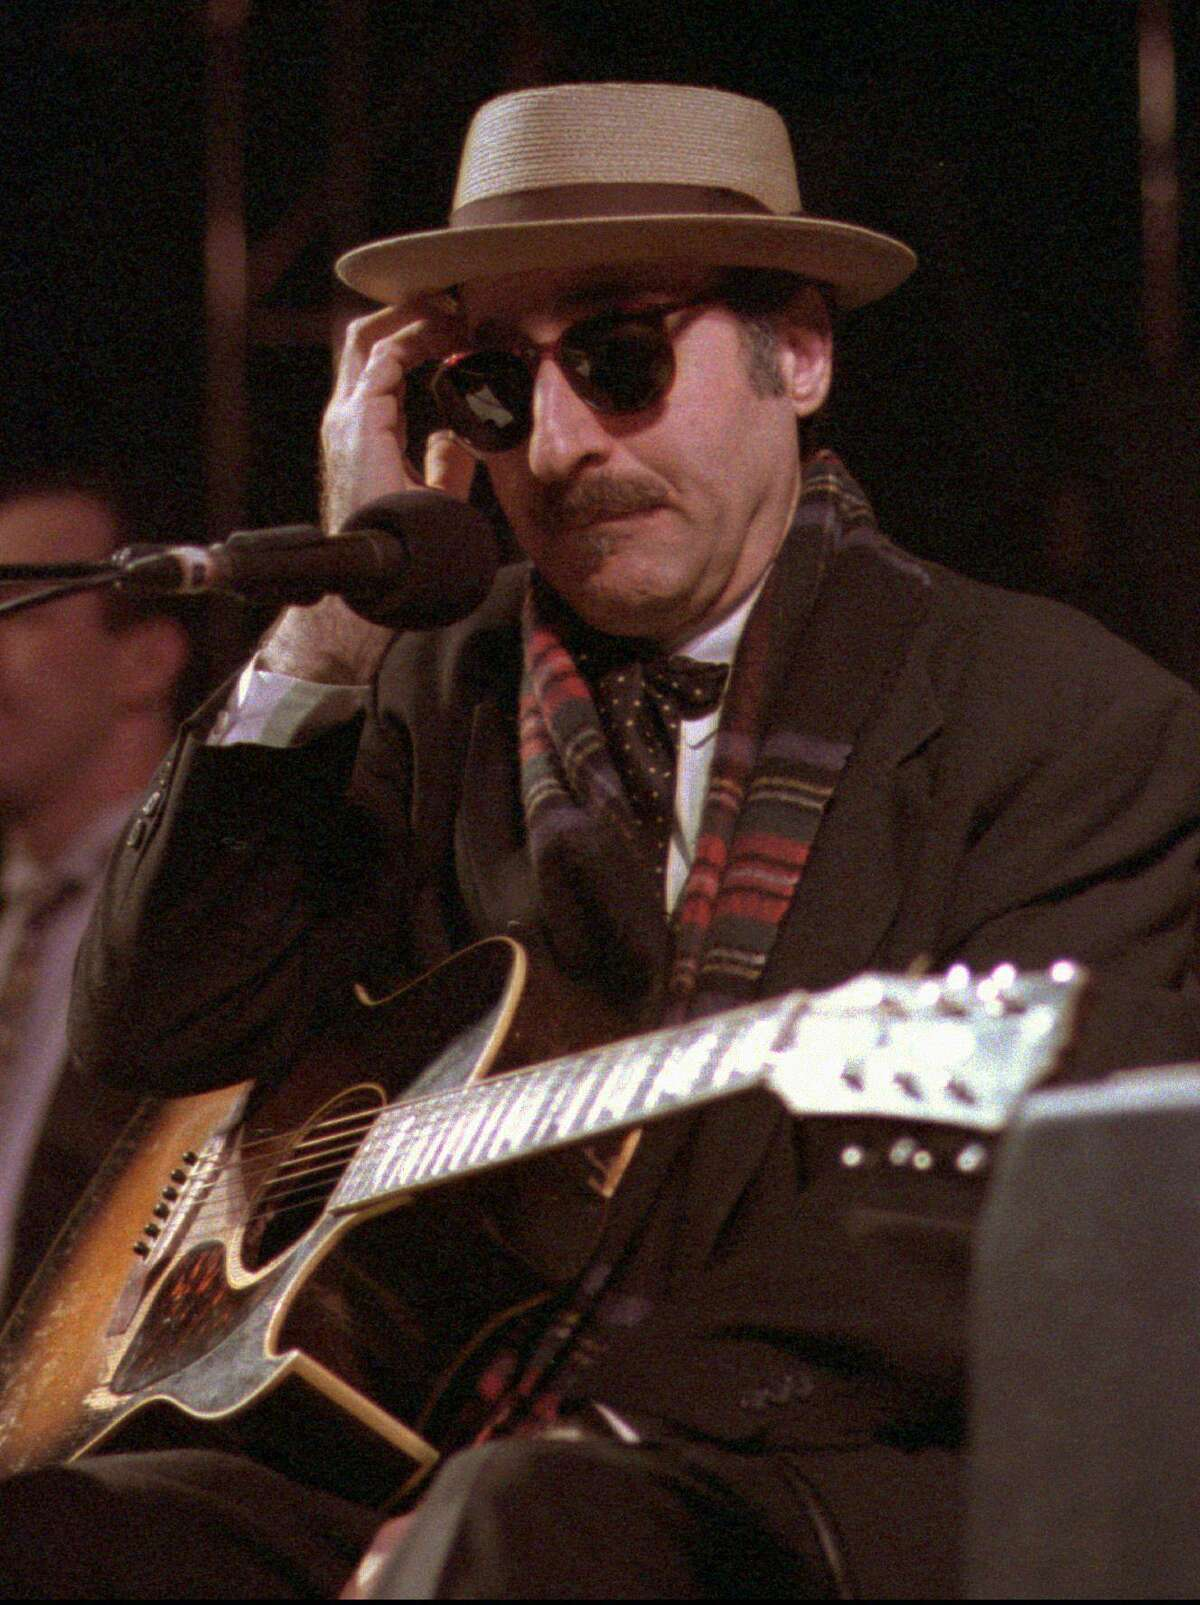 The unclassifiable Leon Redbone performs at the eighth annual Redwood Coast Dixieland Jazz Festival in Eureka, Calif., Saturday, March 28, 1998. The Redbone repertoire mixes old-time blues, jazz and vaudeville tunes. (AP Photo/Times-Standard, Patricia Wilson) Ran on: 08-10-2007 Leon Redbone says he never knows what songs hell play. He picks them on the spot.